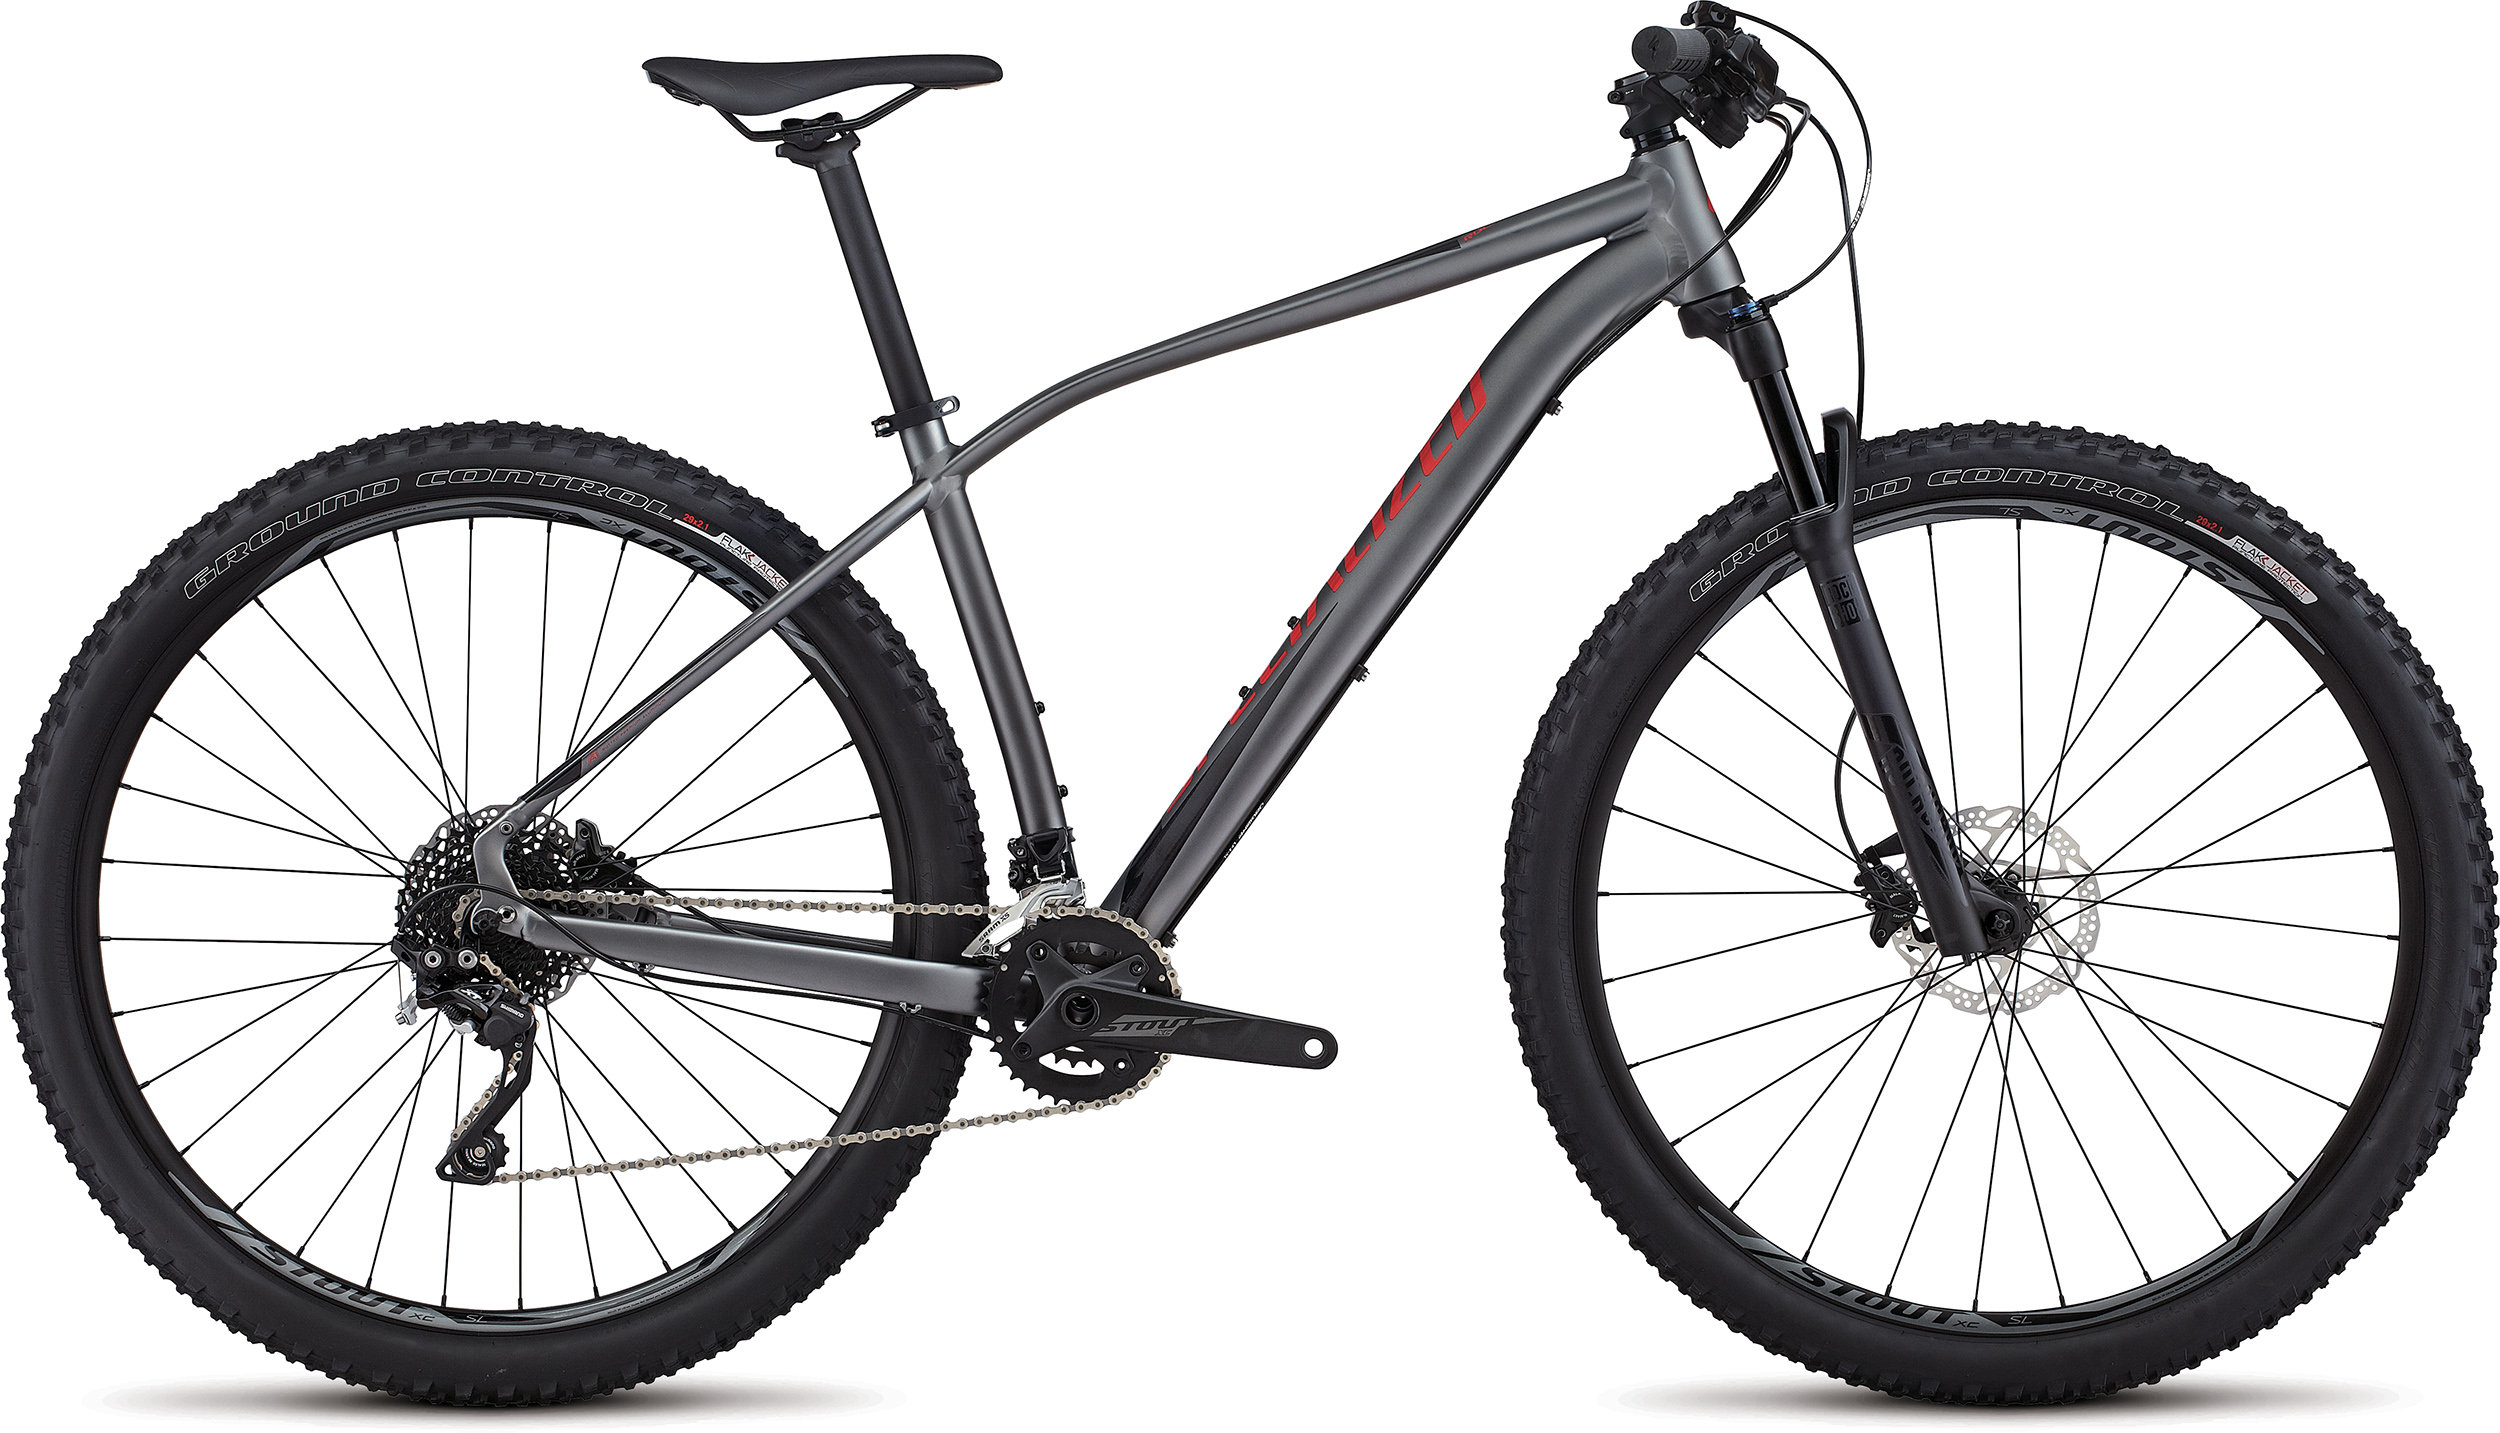 SPECIALIZED RH PRO 29 DRMSIL/BLK/NRDCRED S - Bike Maniac